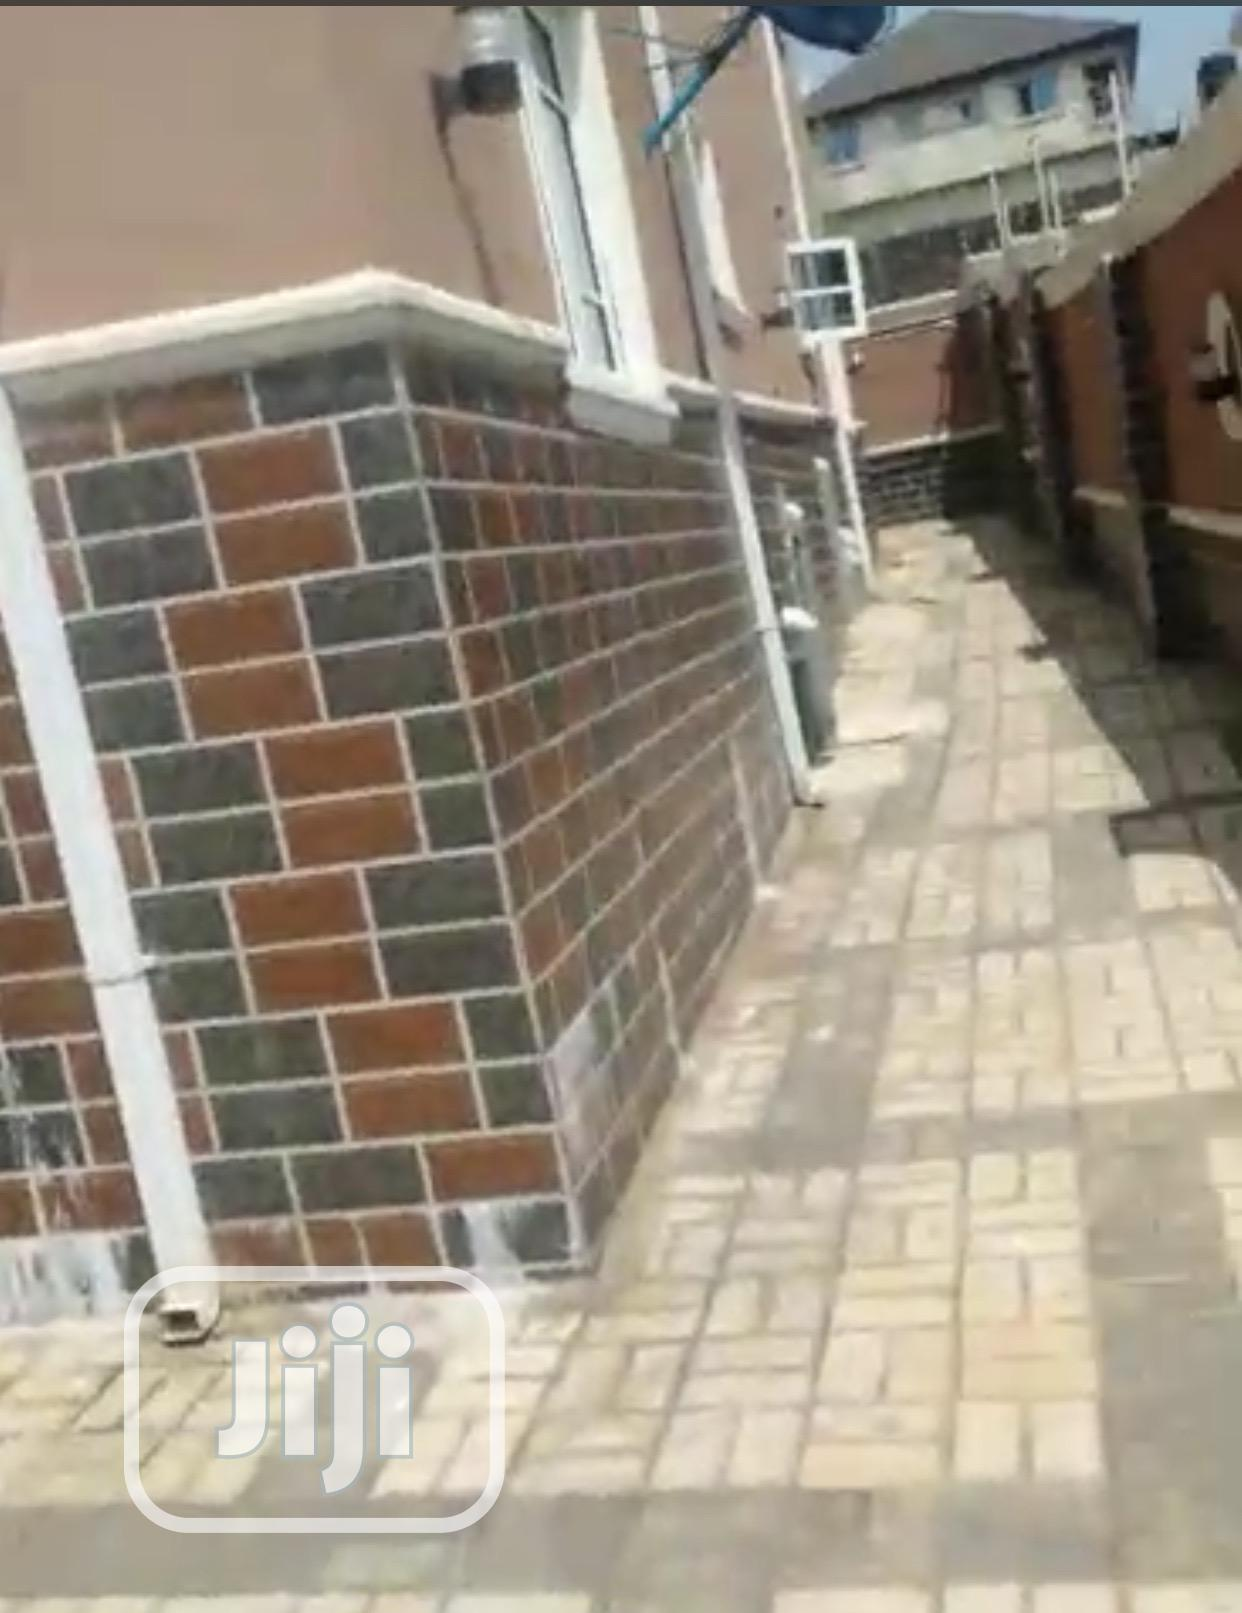 5 Bedroom Duplex For Sale | Houses & Apartments For Sale for sale in Idemili, Anambra State, Nigeria